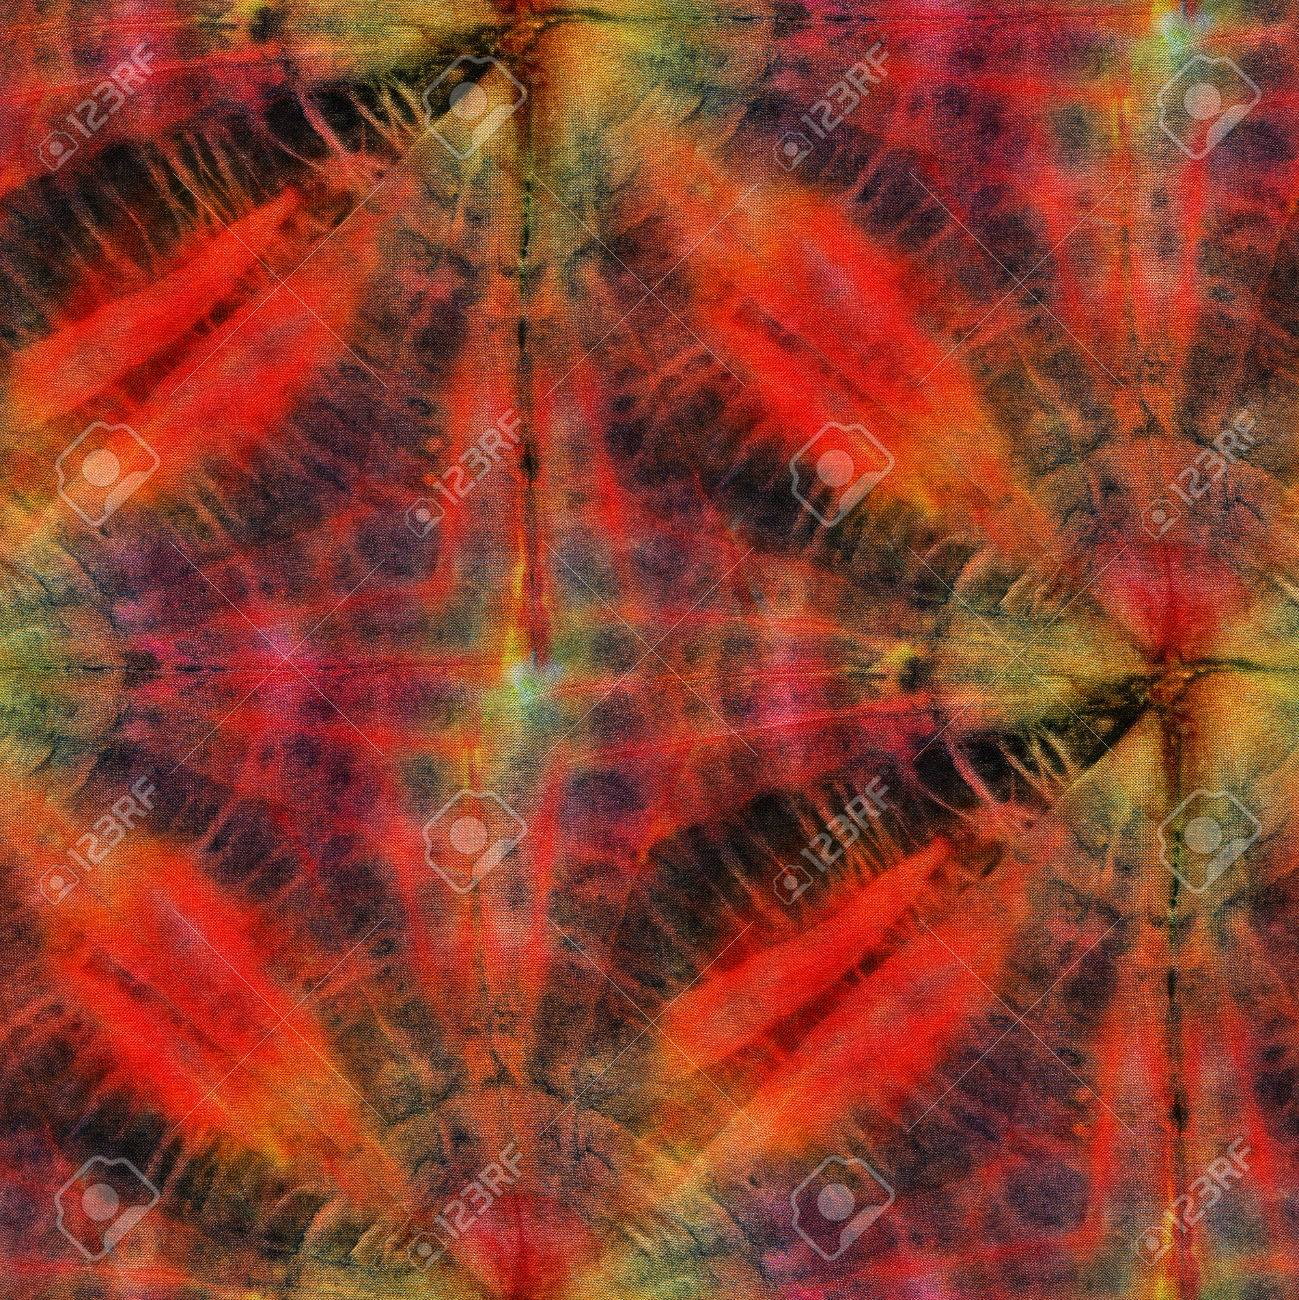 a04f878f9e9b Seamless tie-dye pattern of red and black color on white silk. Hand painting